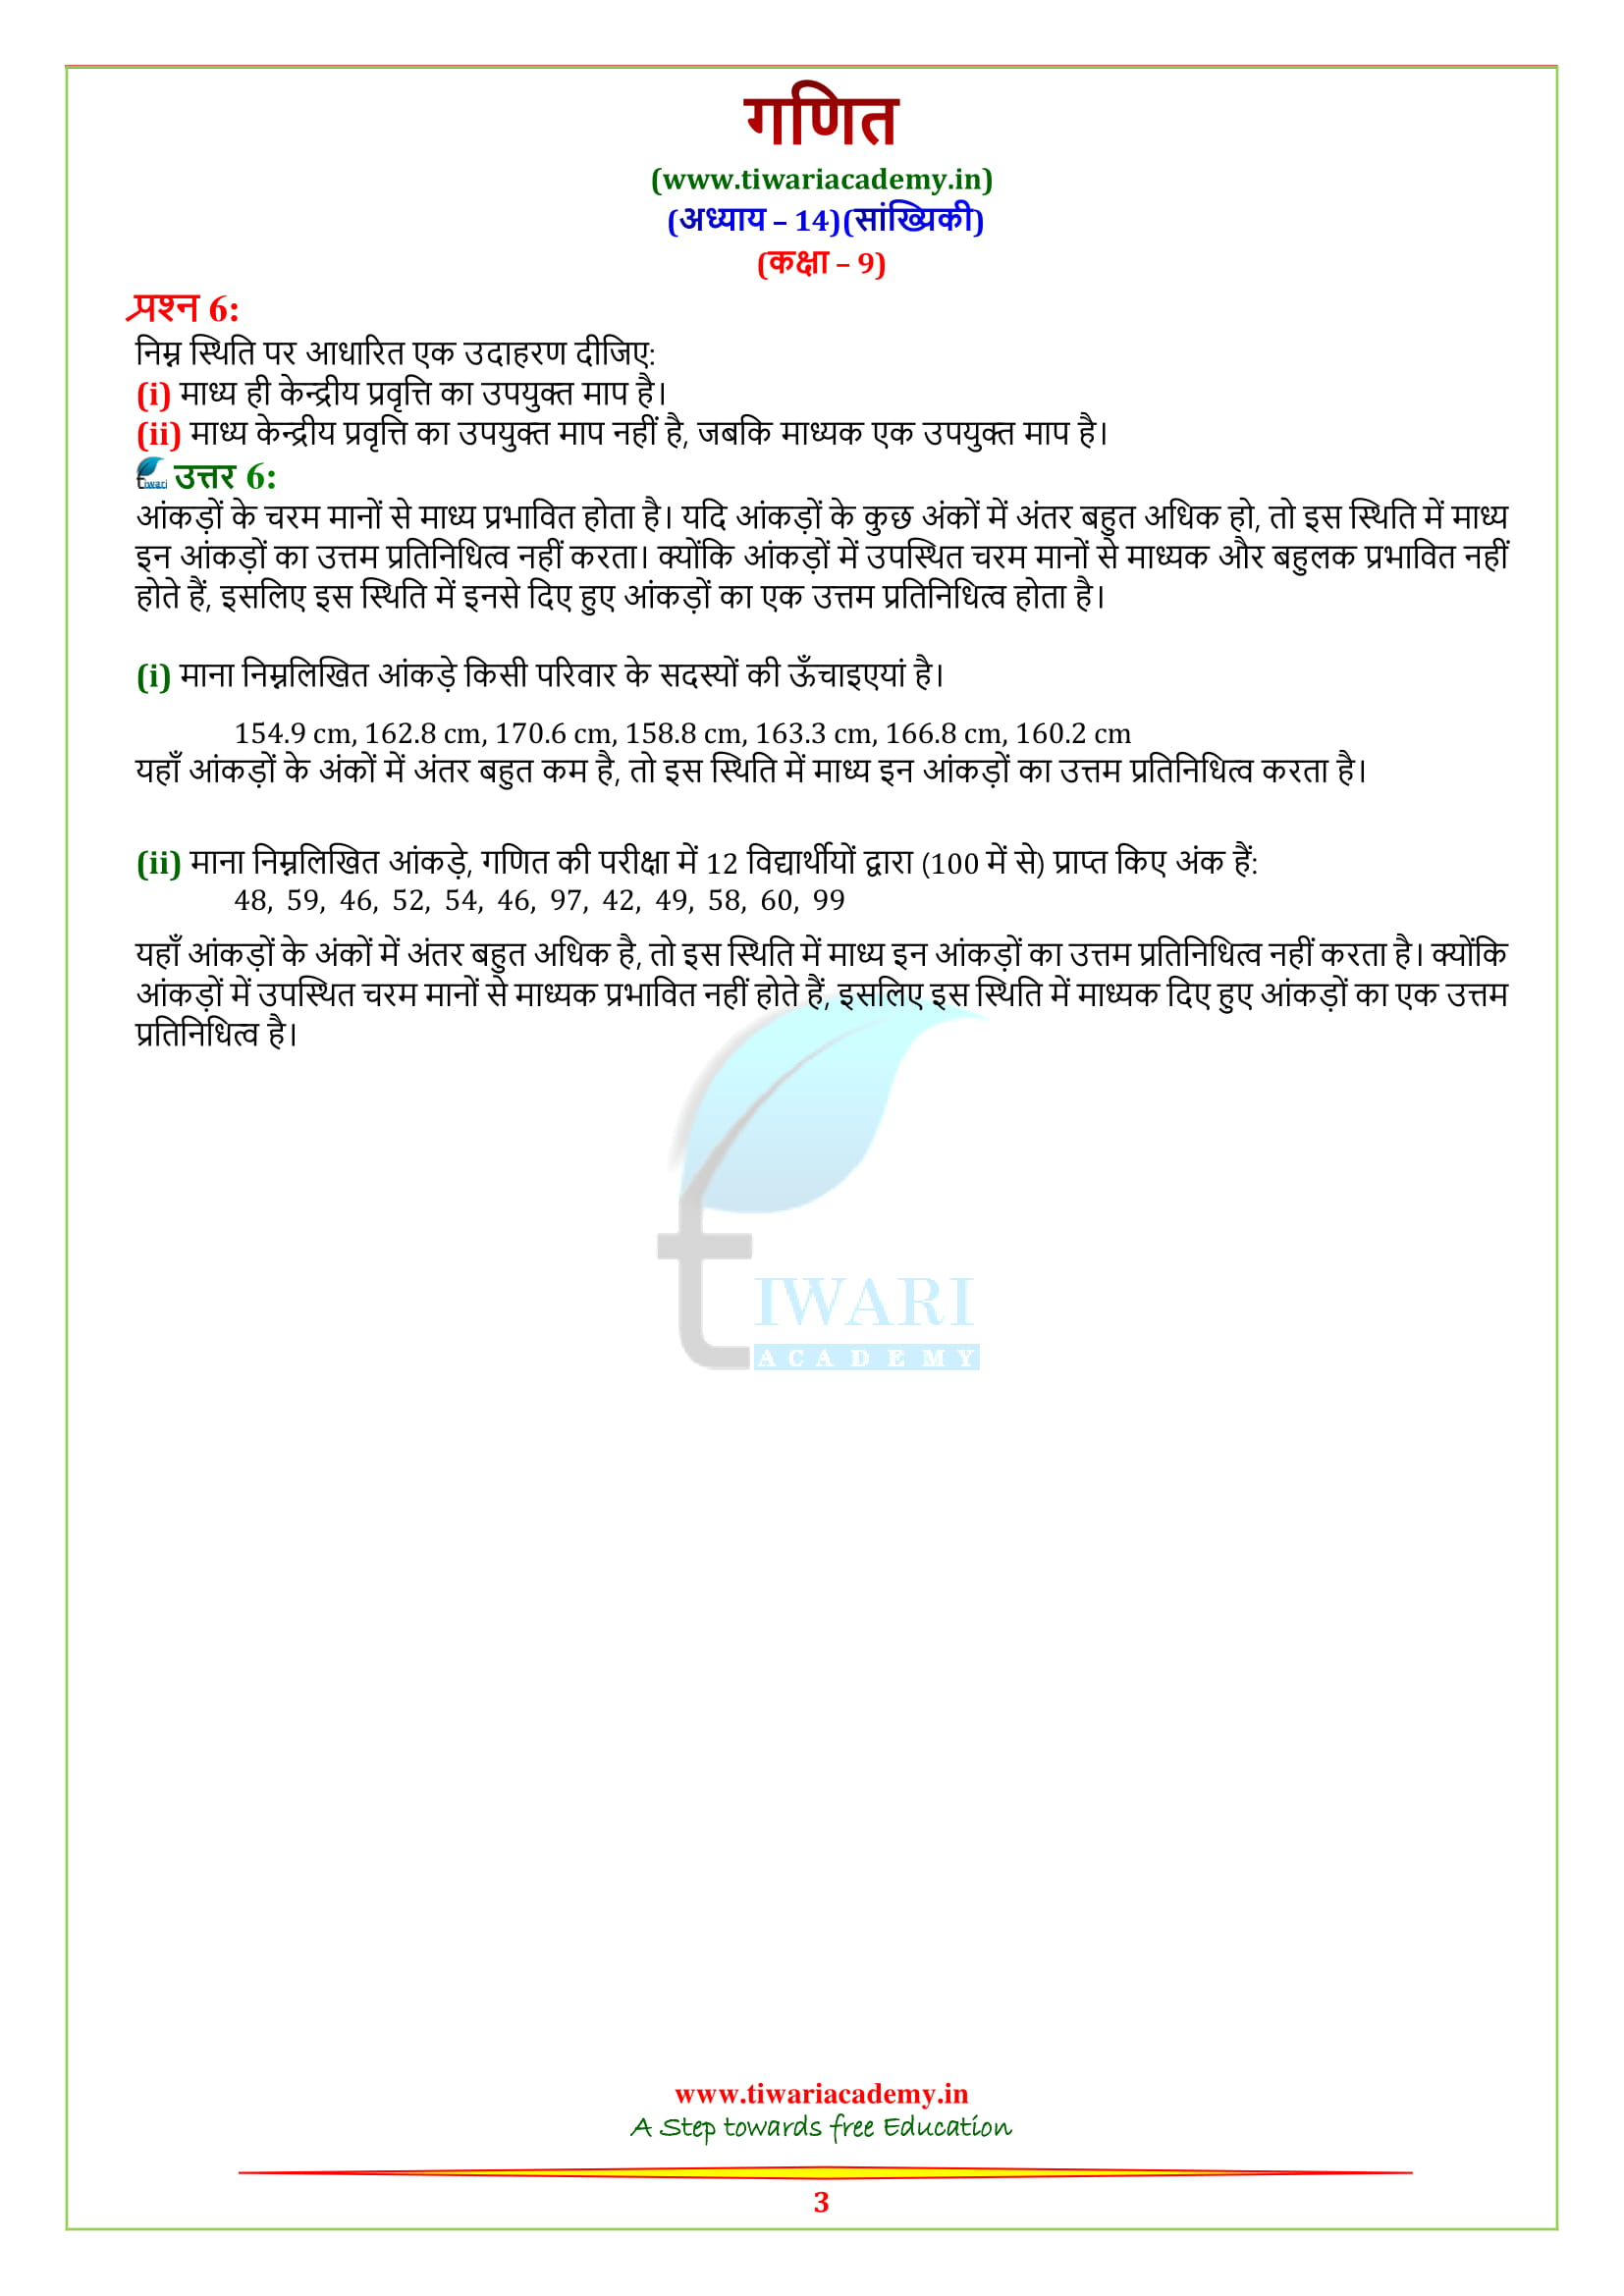 NCERT Solutions for class 9 Maths Exercise 14.4 all questions guide